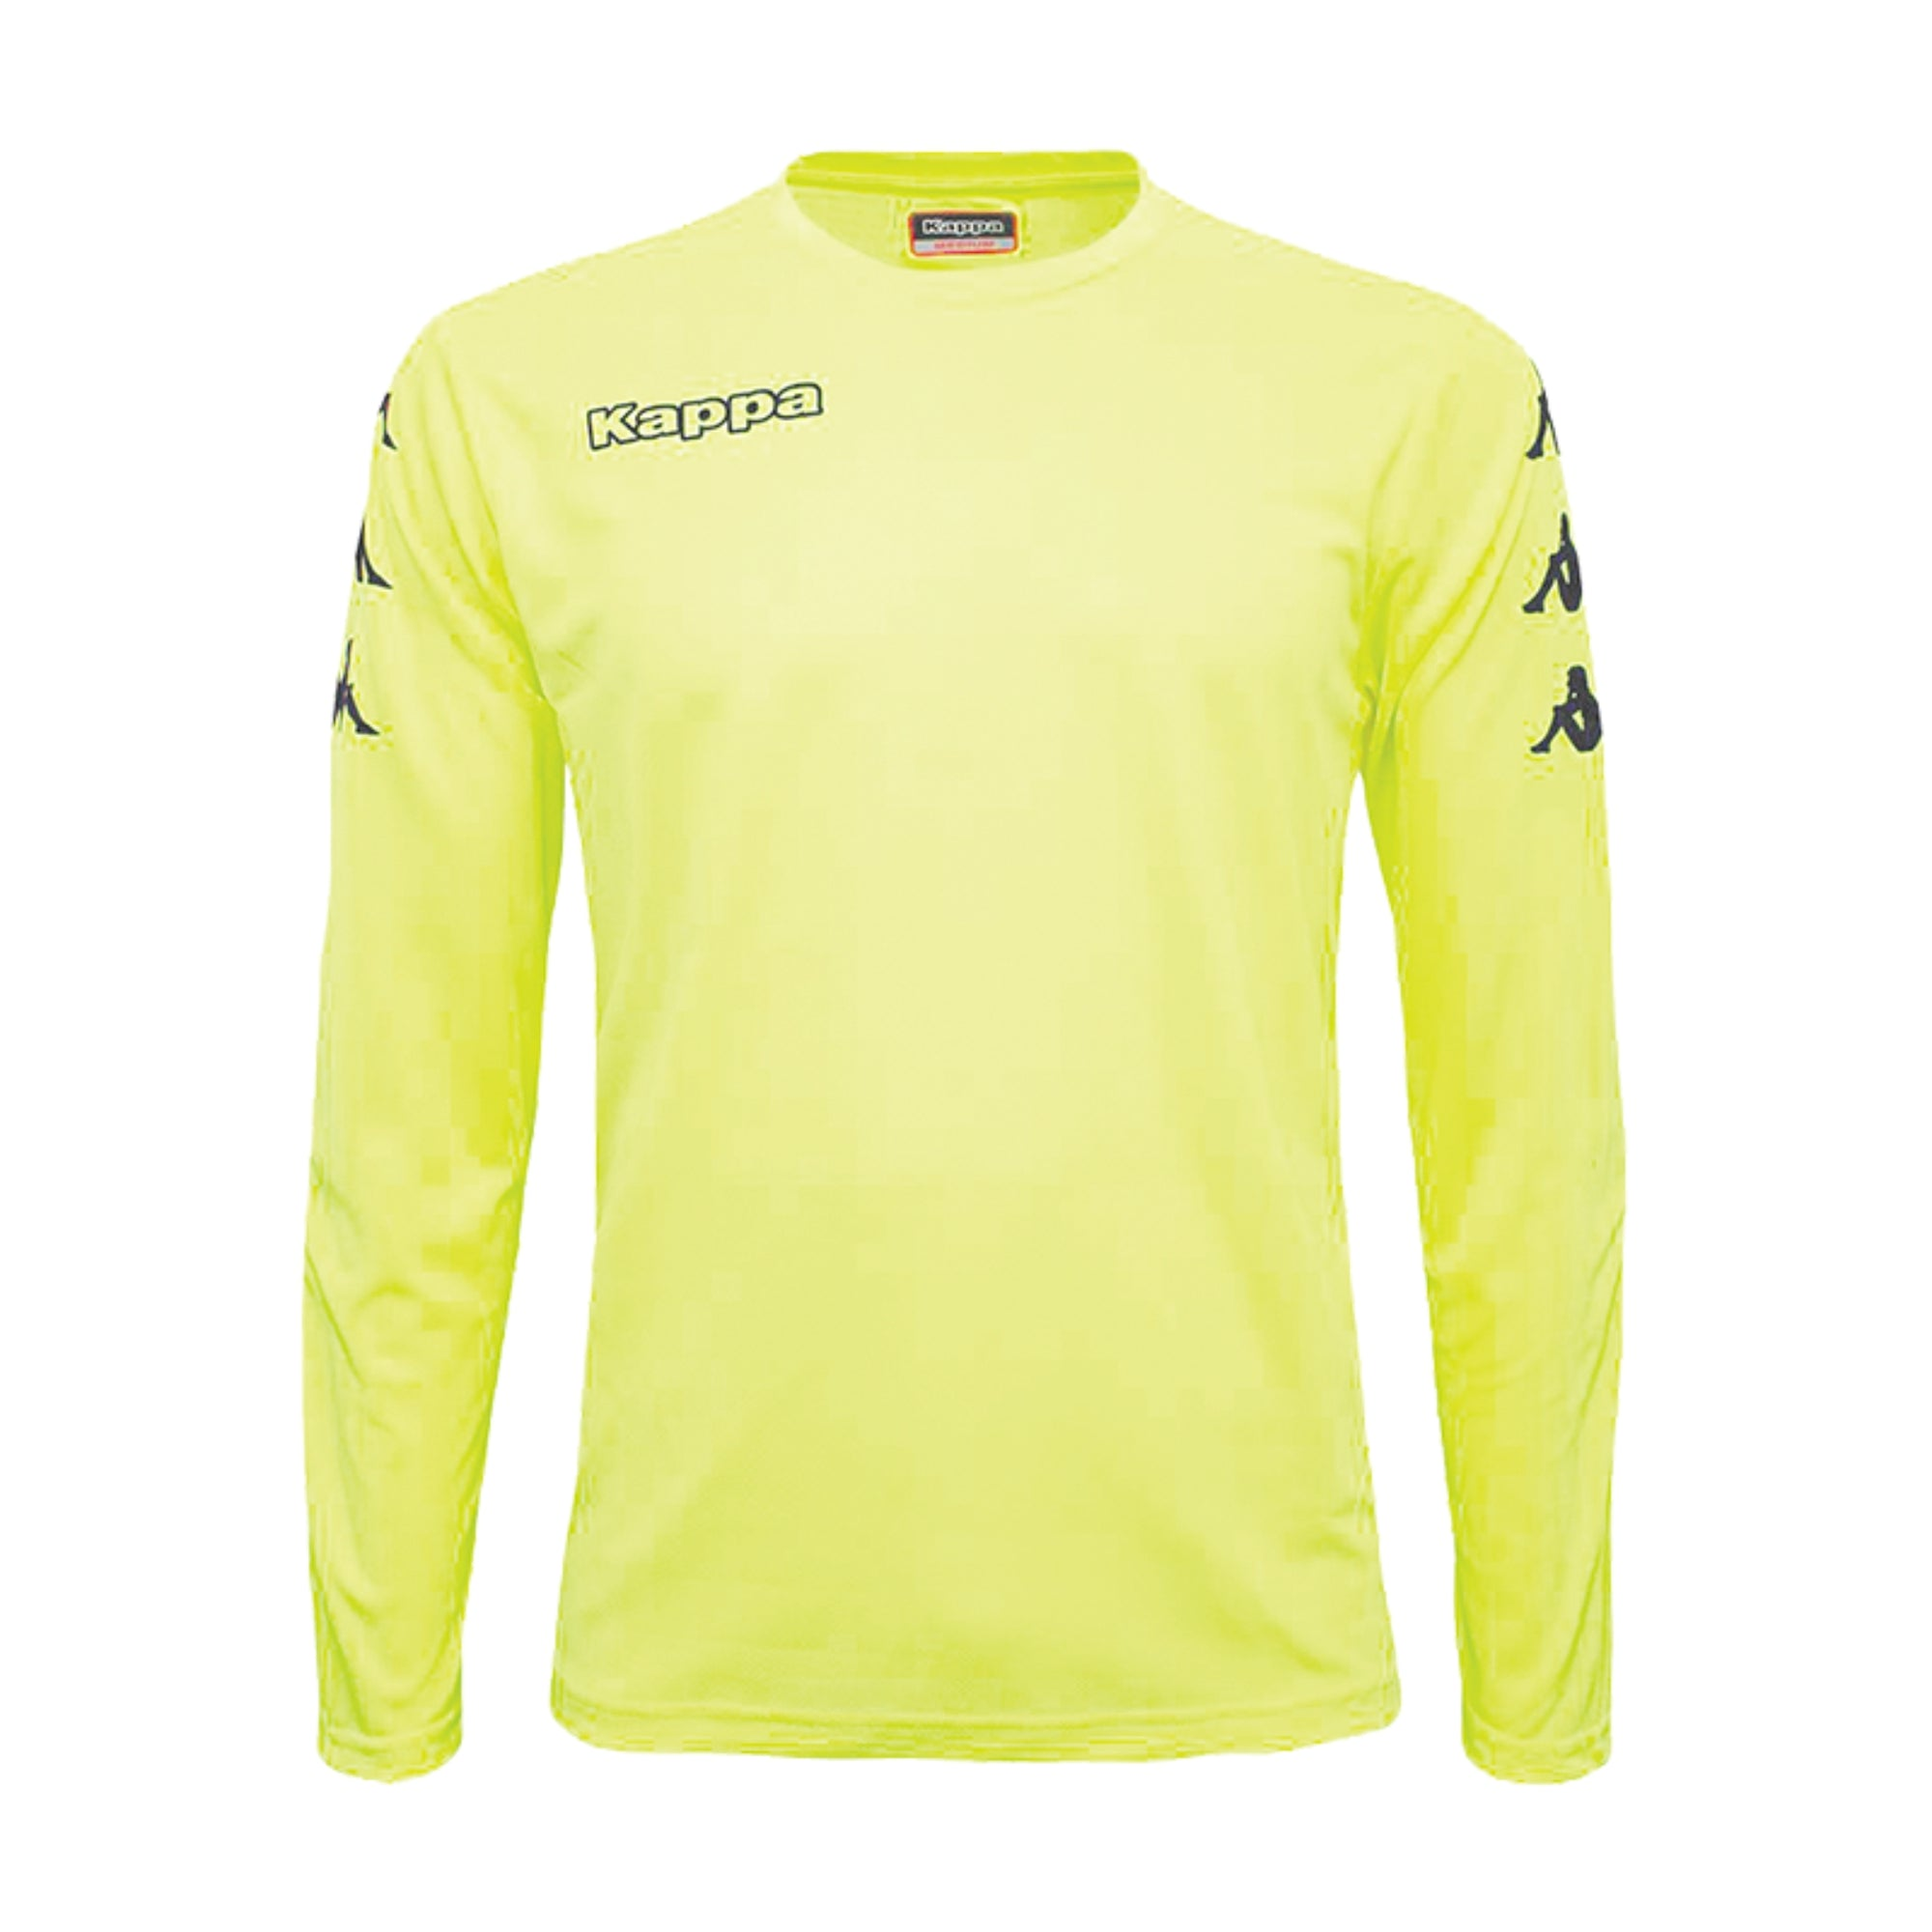 Kappa goalkeeper shirt in yellow fluo with black printed Omini banda on the sleeves